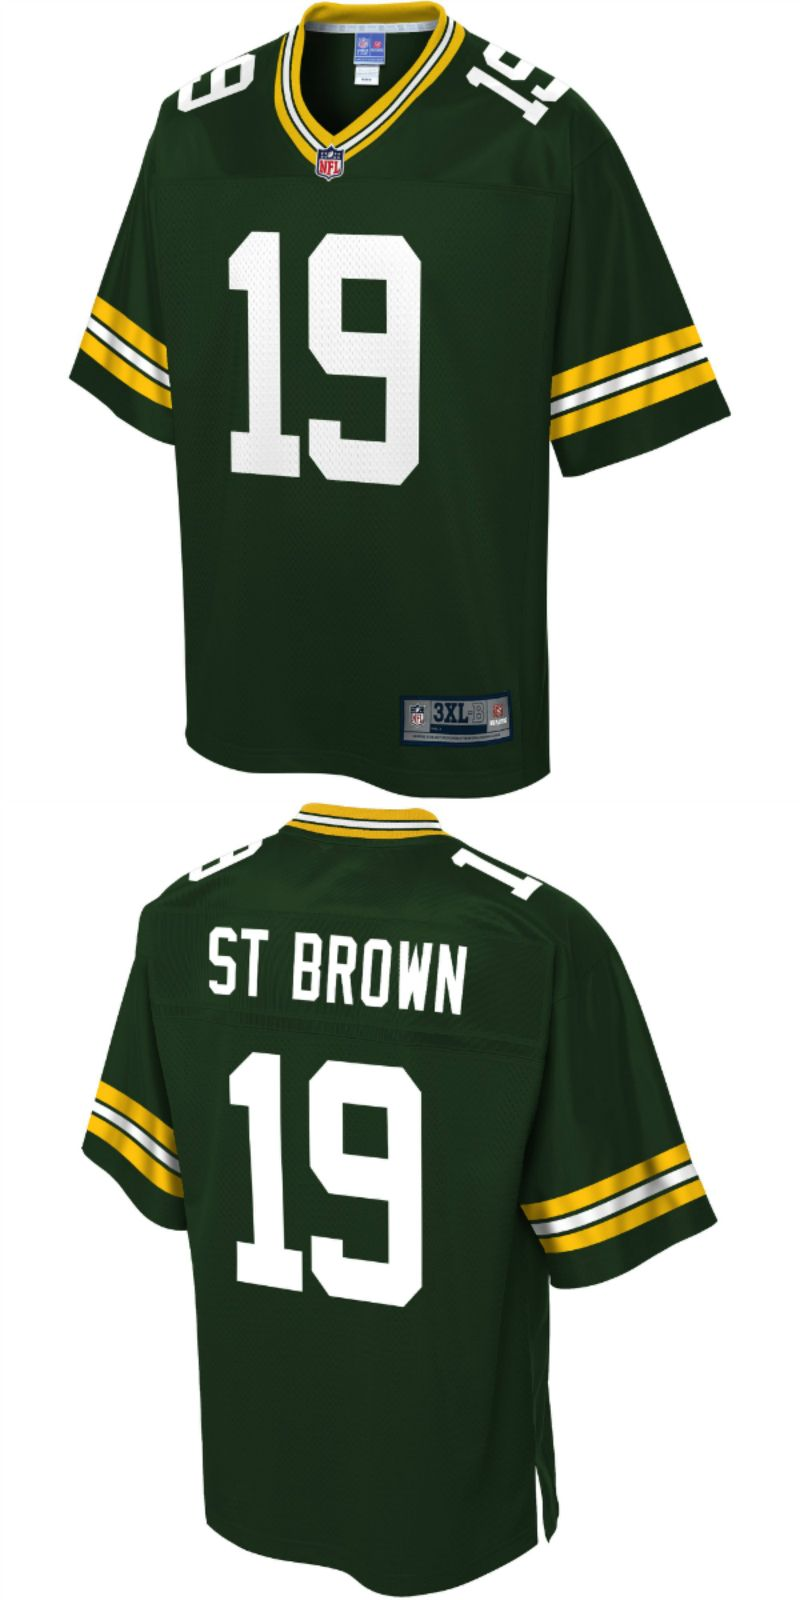 best service 4cbcd 50d07 UP TO 70% OFF. Equanimeous St. Brown Green Bay Packers NFL ...